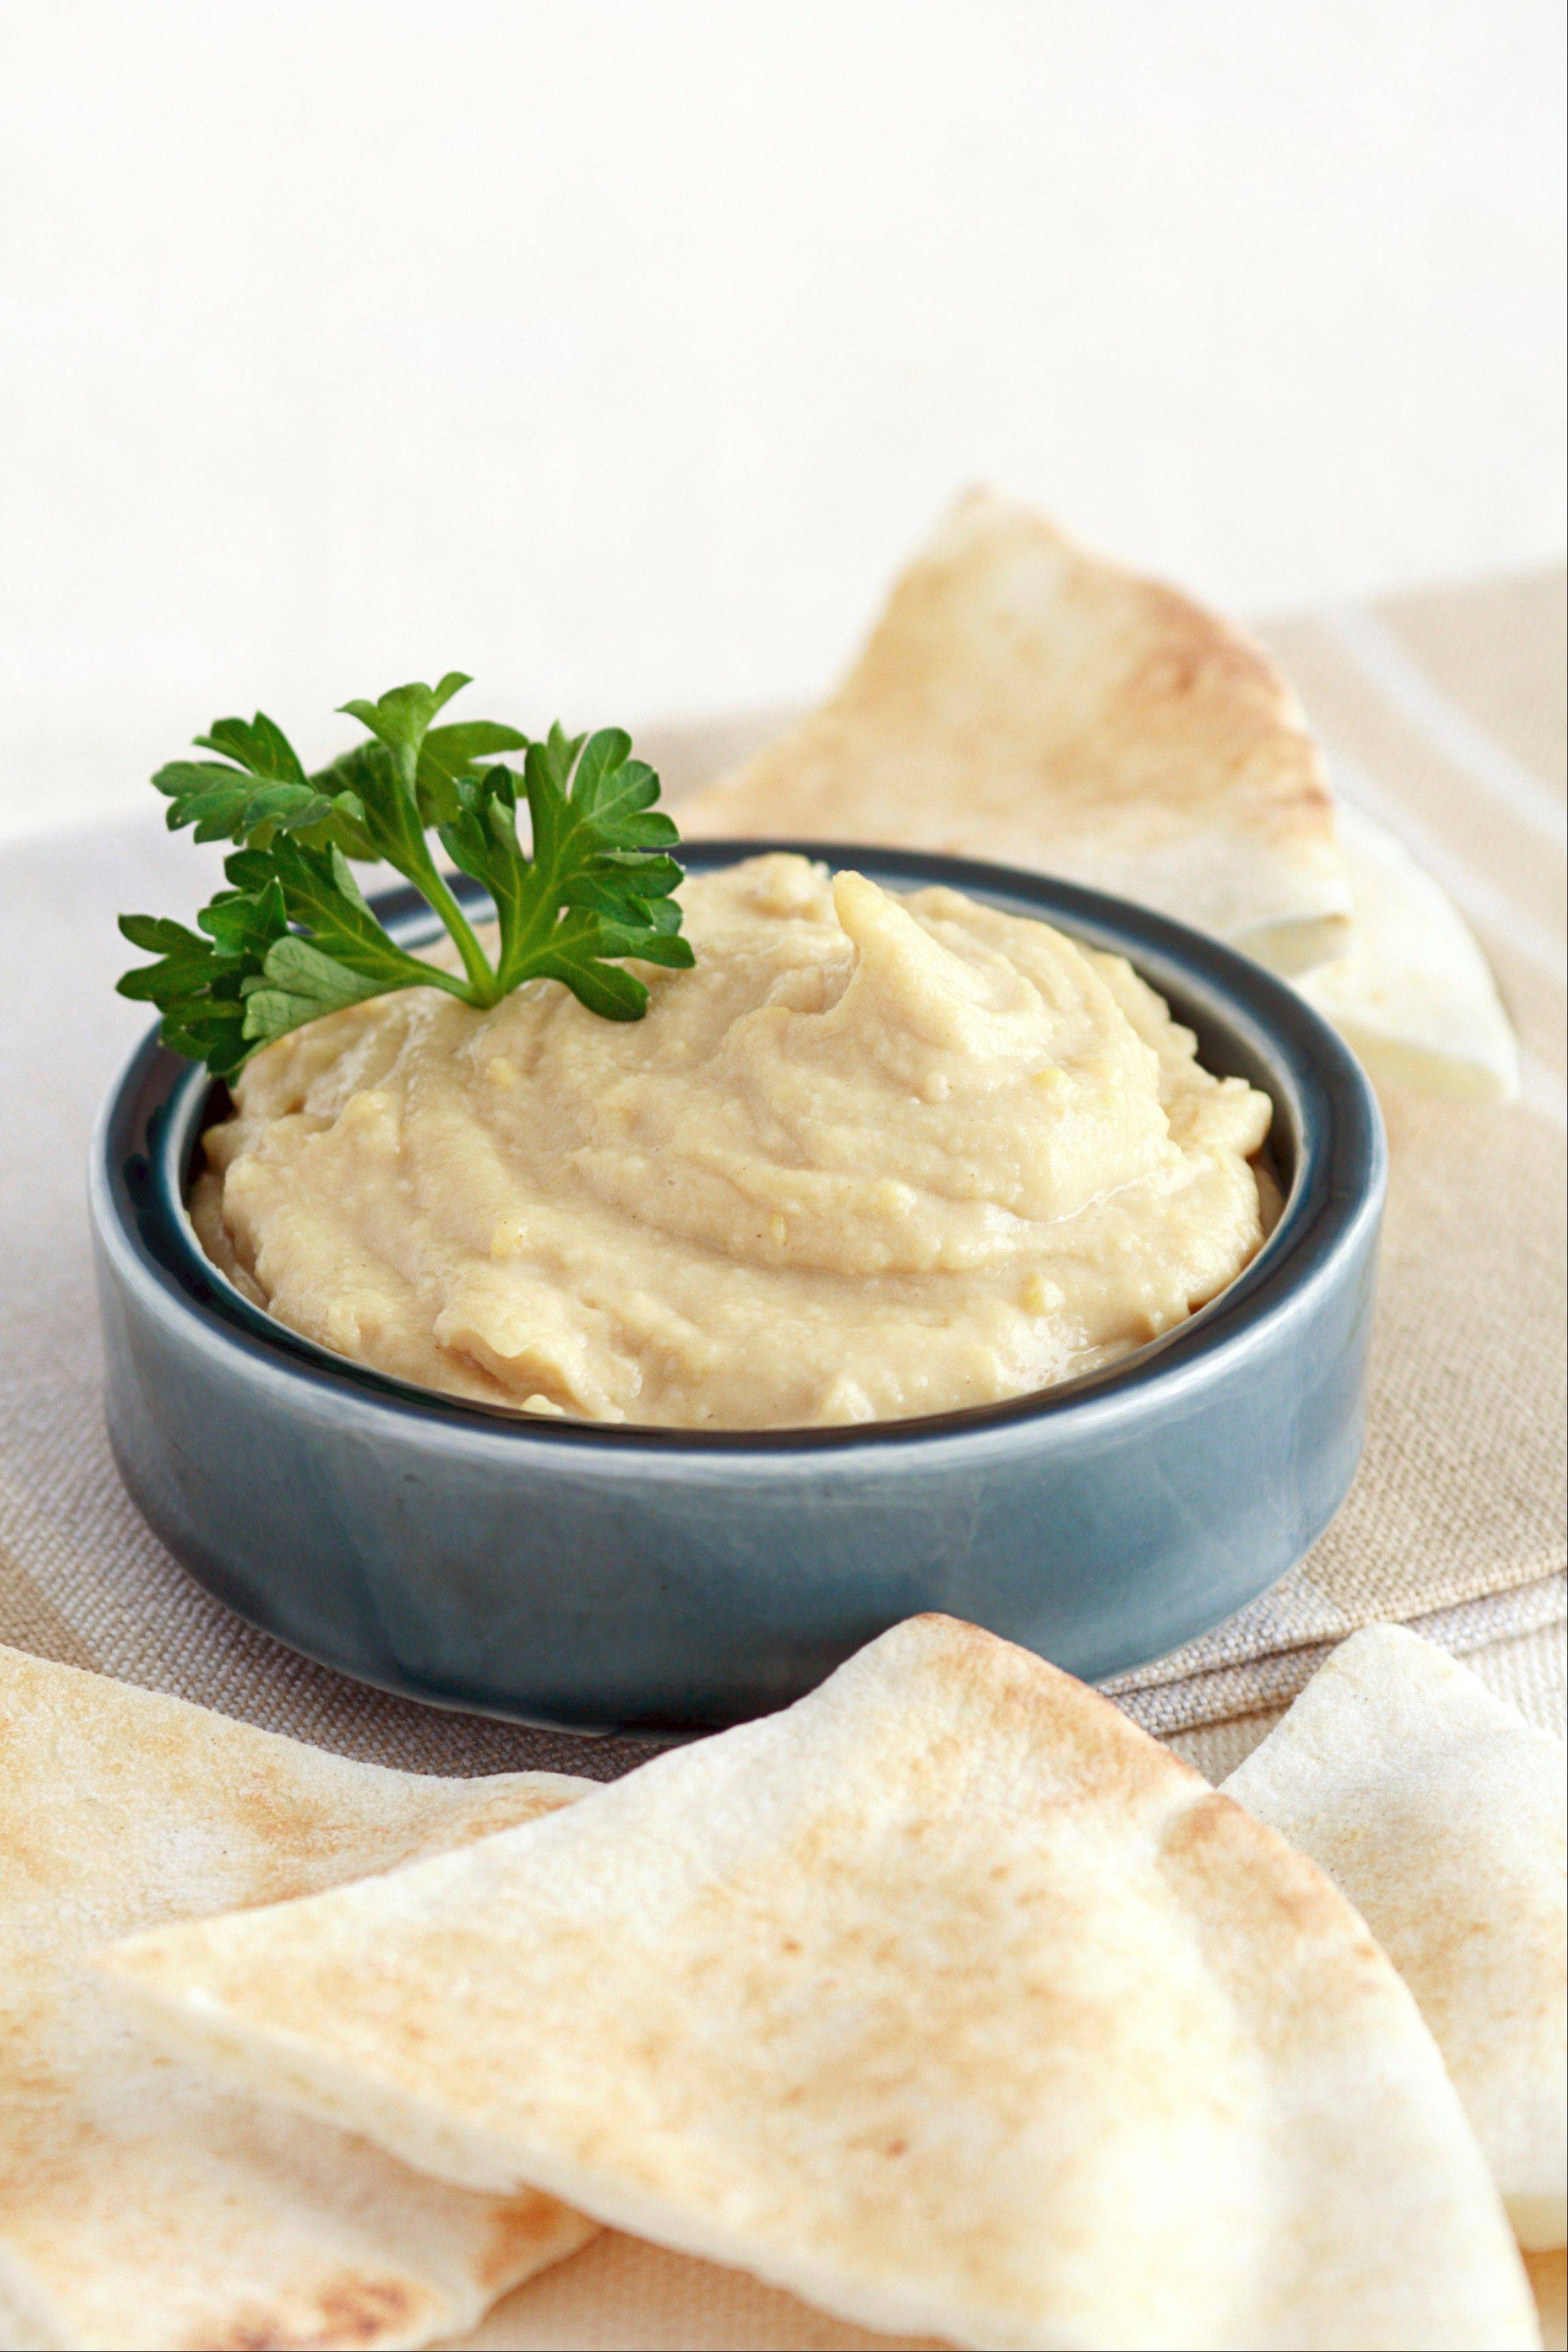 Cannelli beans stand in for chickpeas in a hummus-like dip for chips for vegetables.